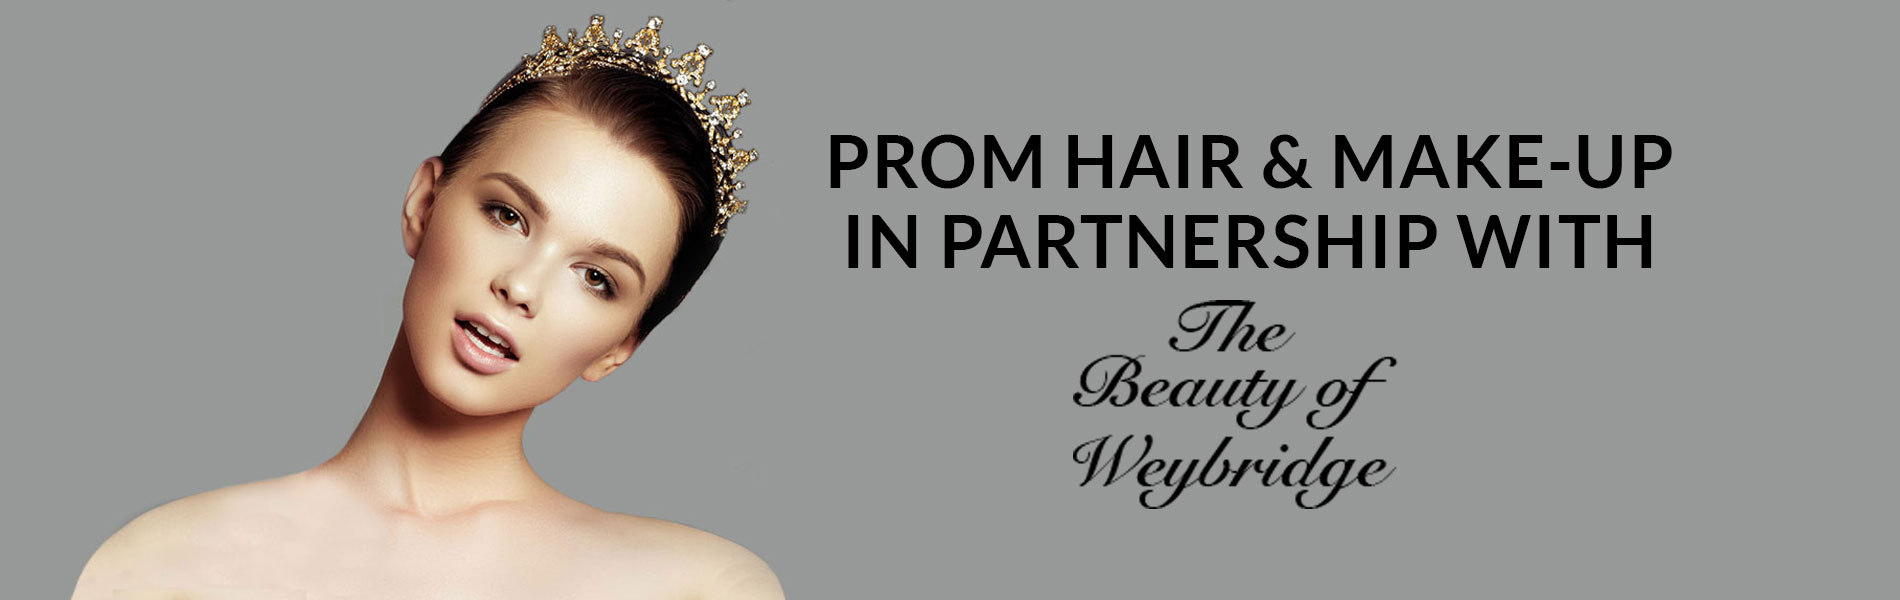 Prom Hair & Make-Up in Partnership with Beauty of Weybridge